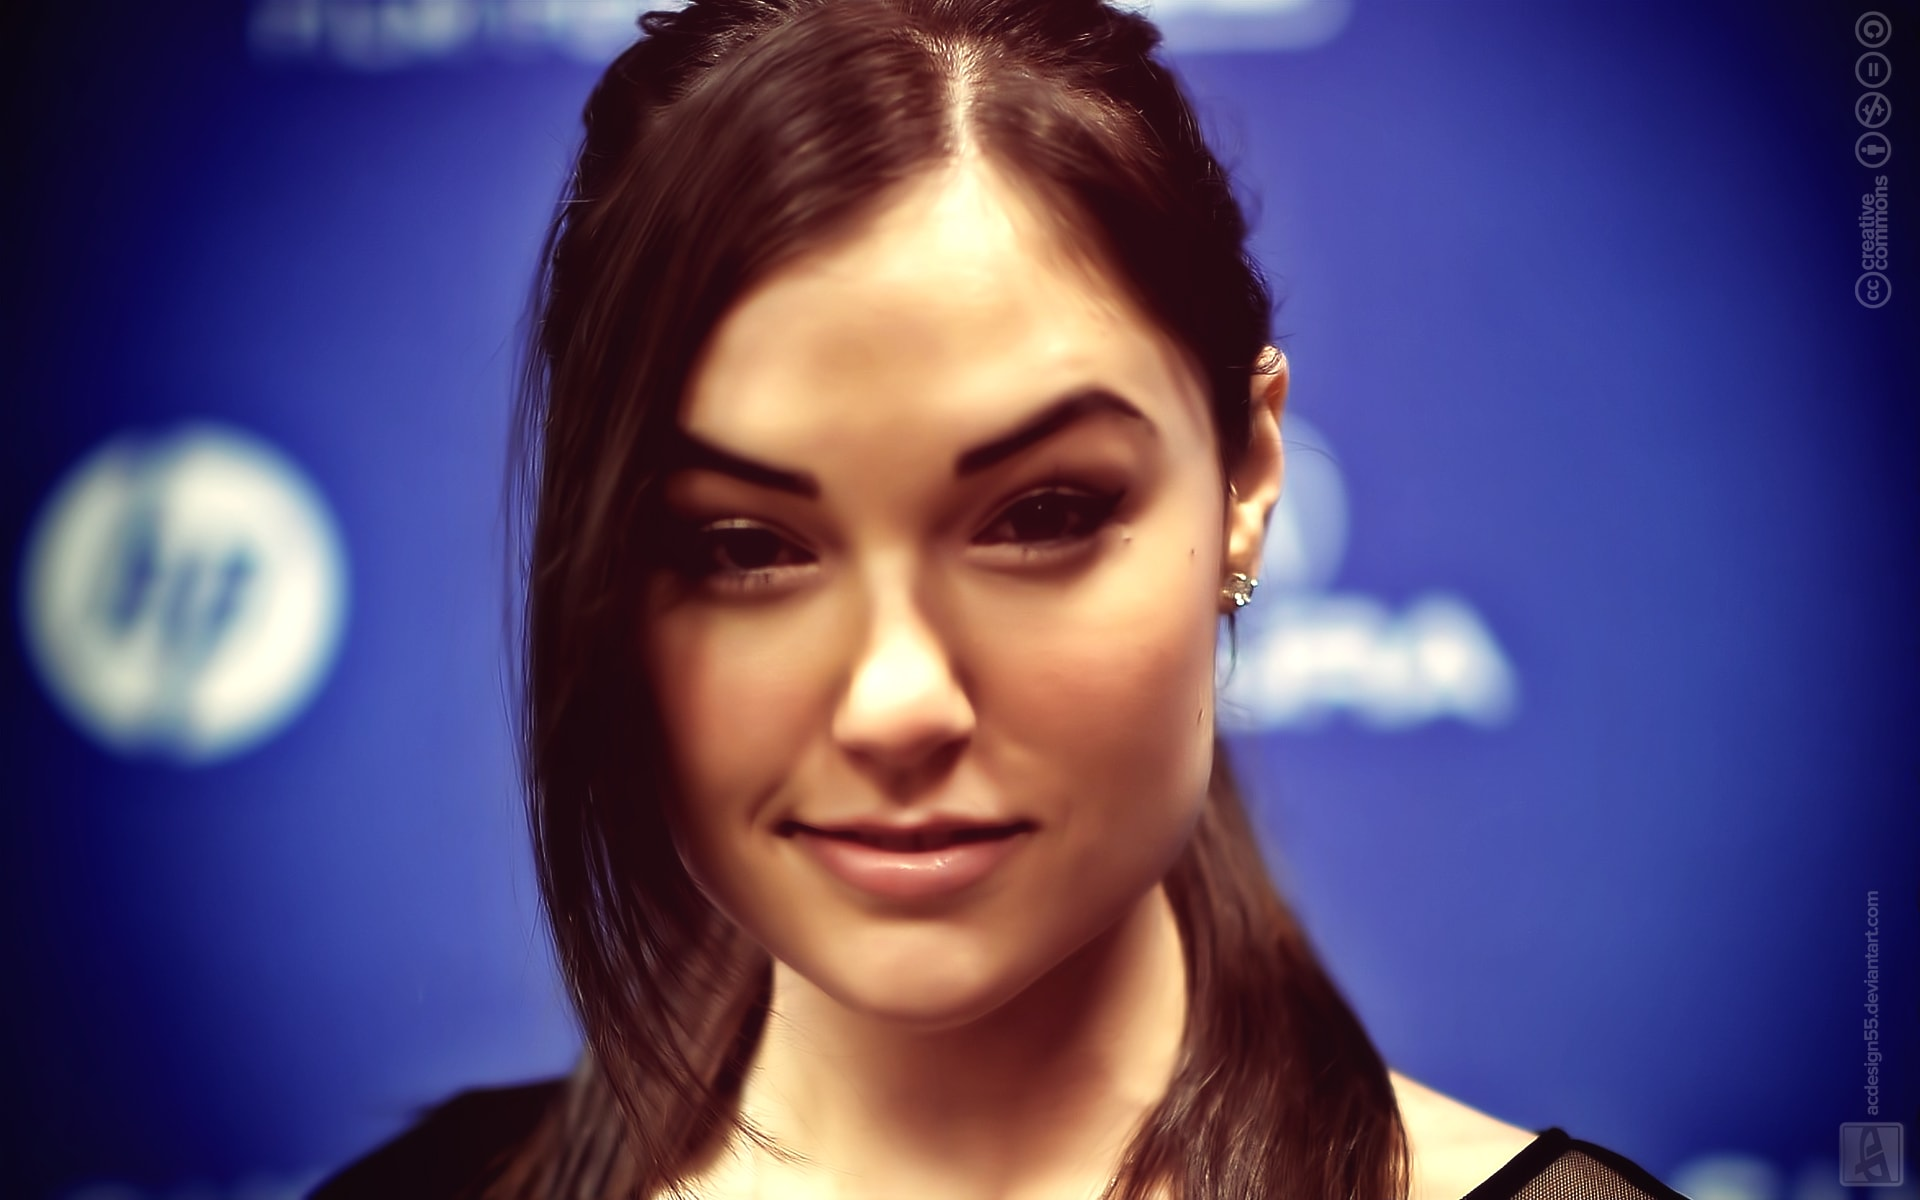 Sasha Grey Widescreen